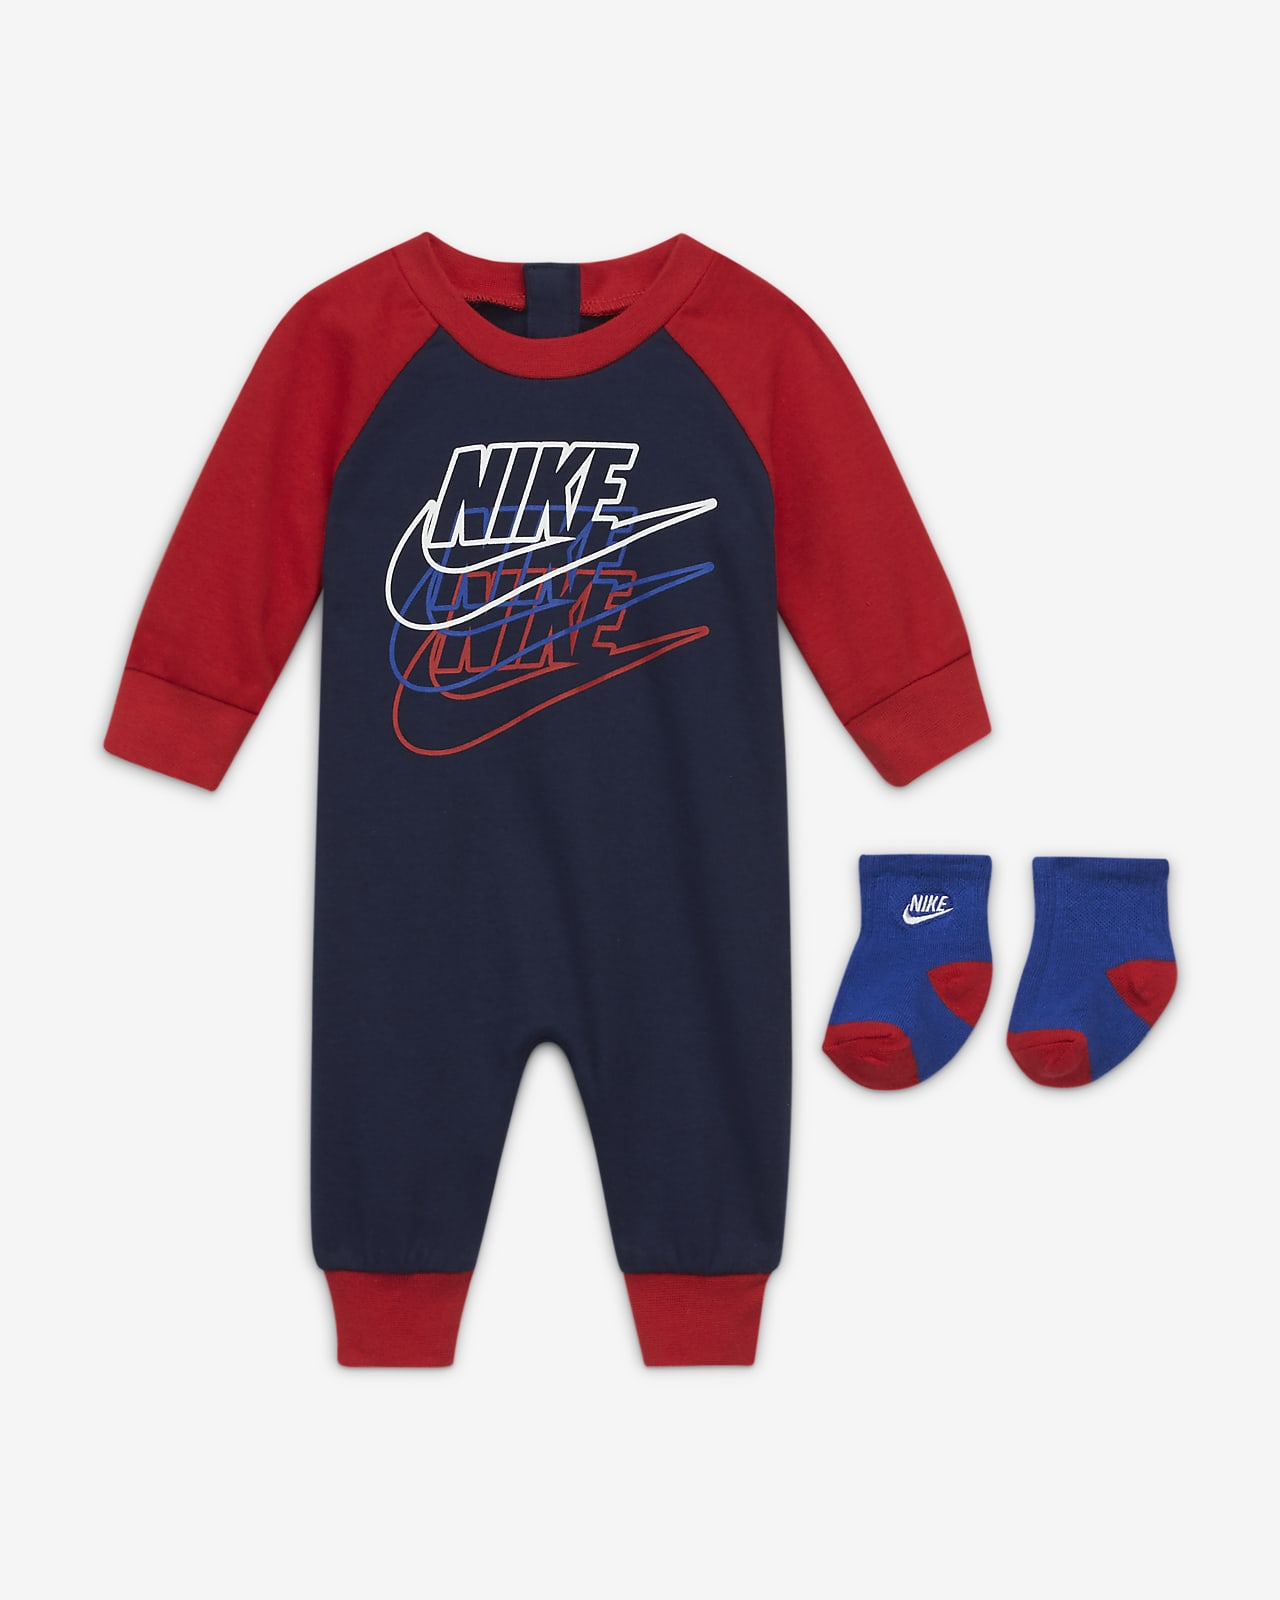 Nike Baby (0-9M) Coverall and Socks Set